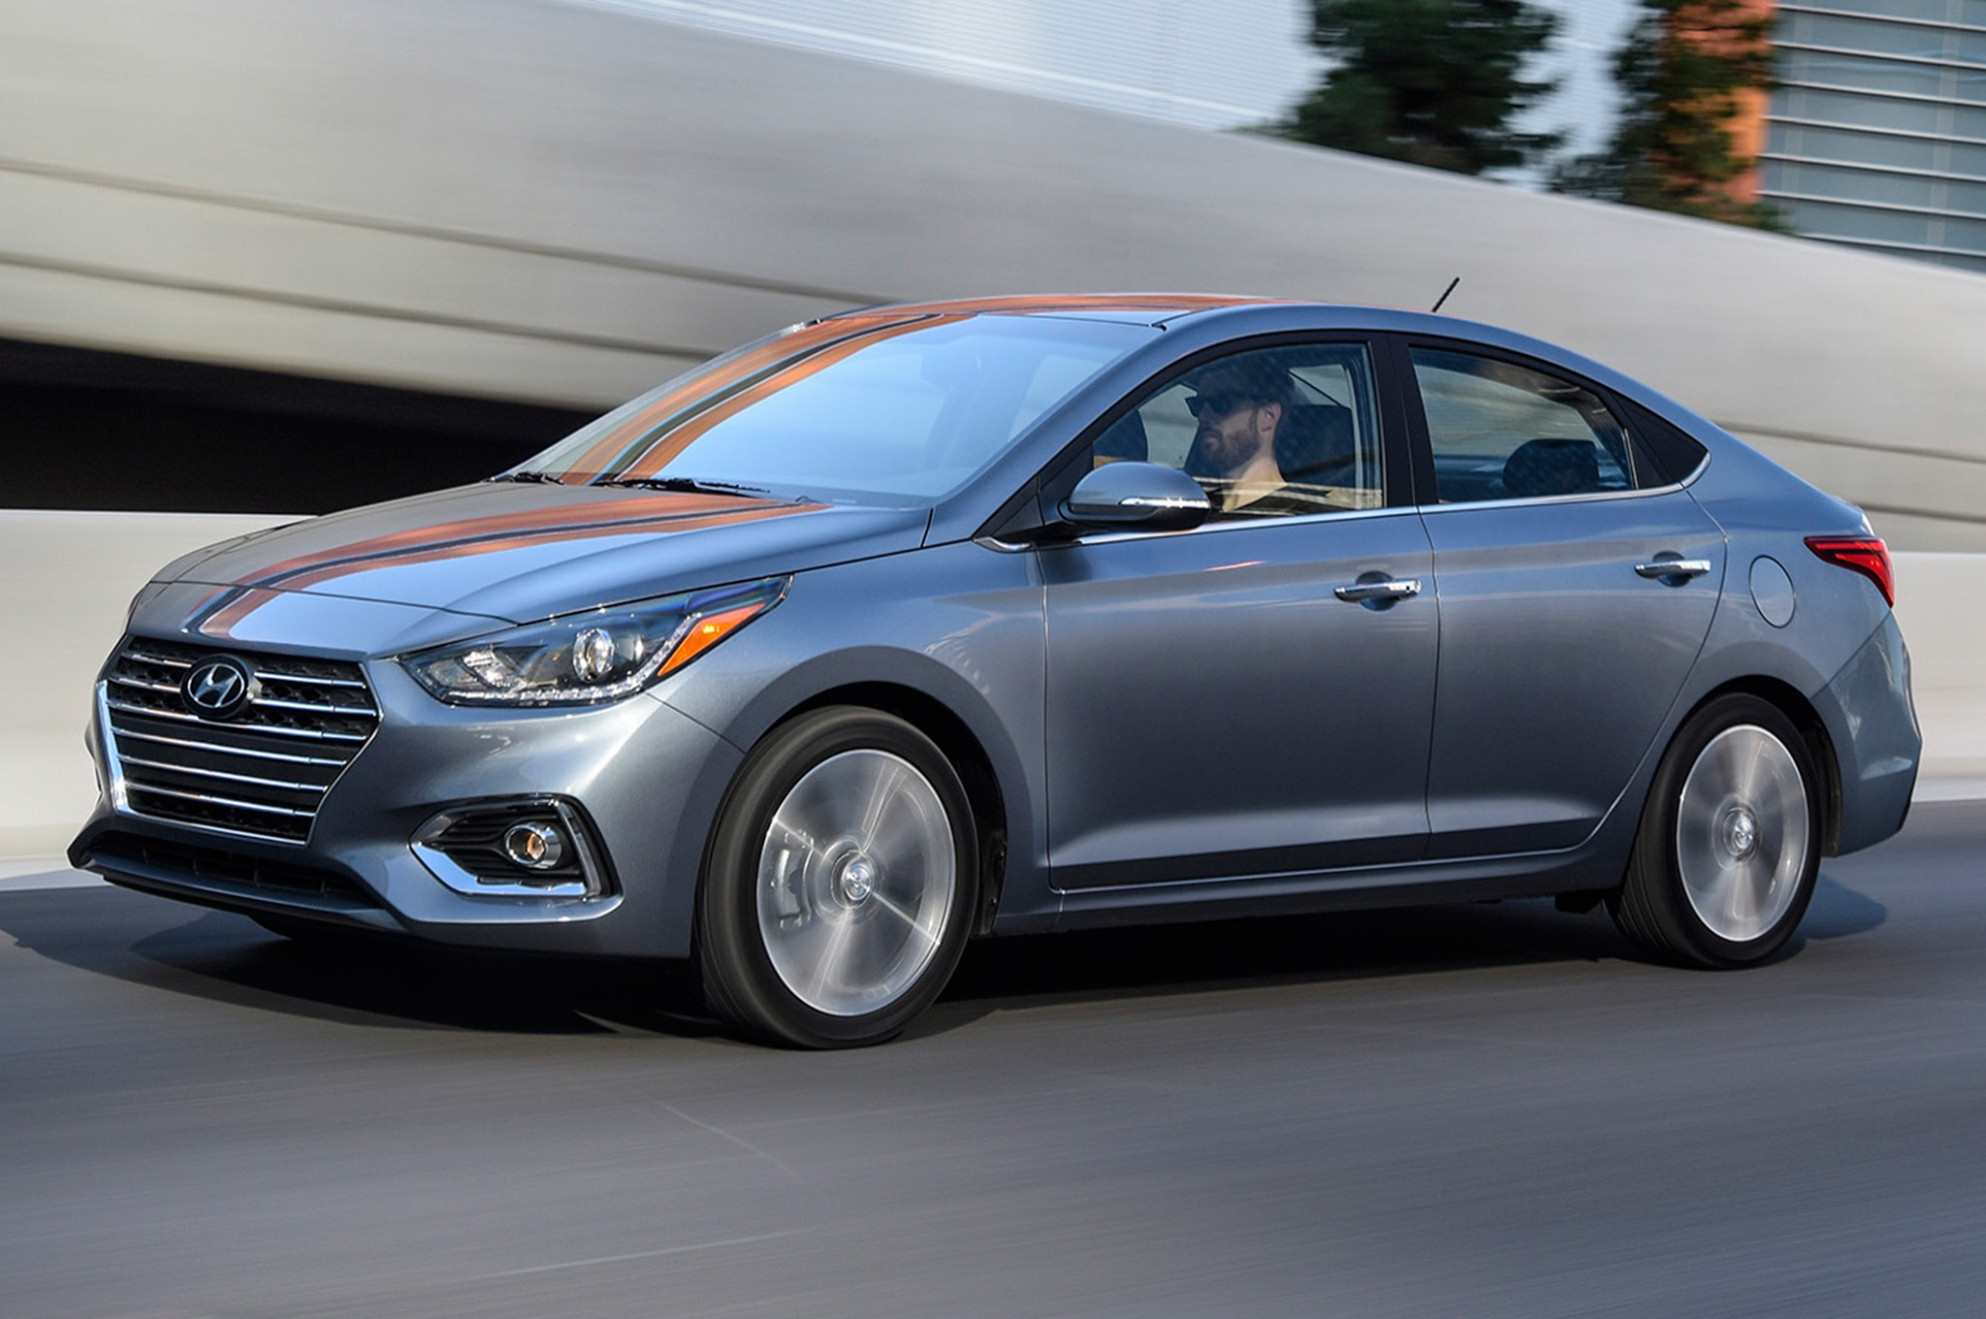 8 Hyundai Accent First Drive Review: Basic No More - 2020 hyundai blue link